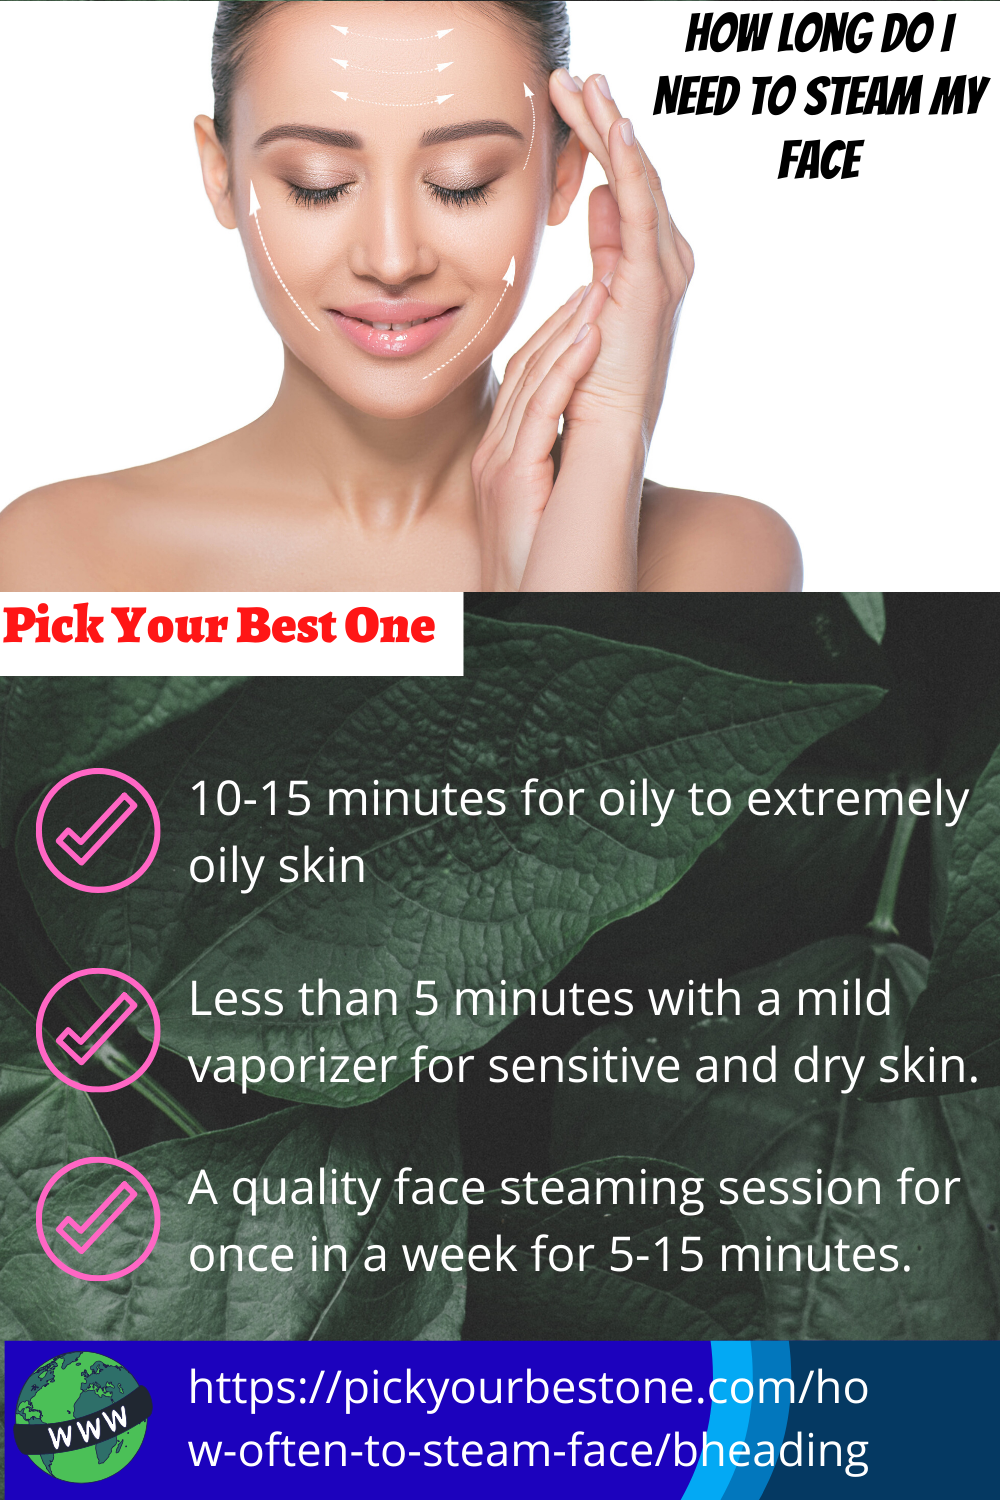 How Long Do I Need To Steam My Face Face Steaming Face Steaming Benefits Extremely Oily Skin